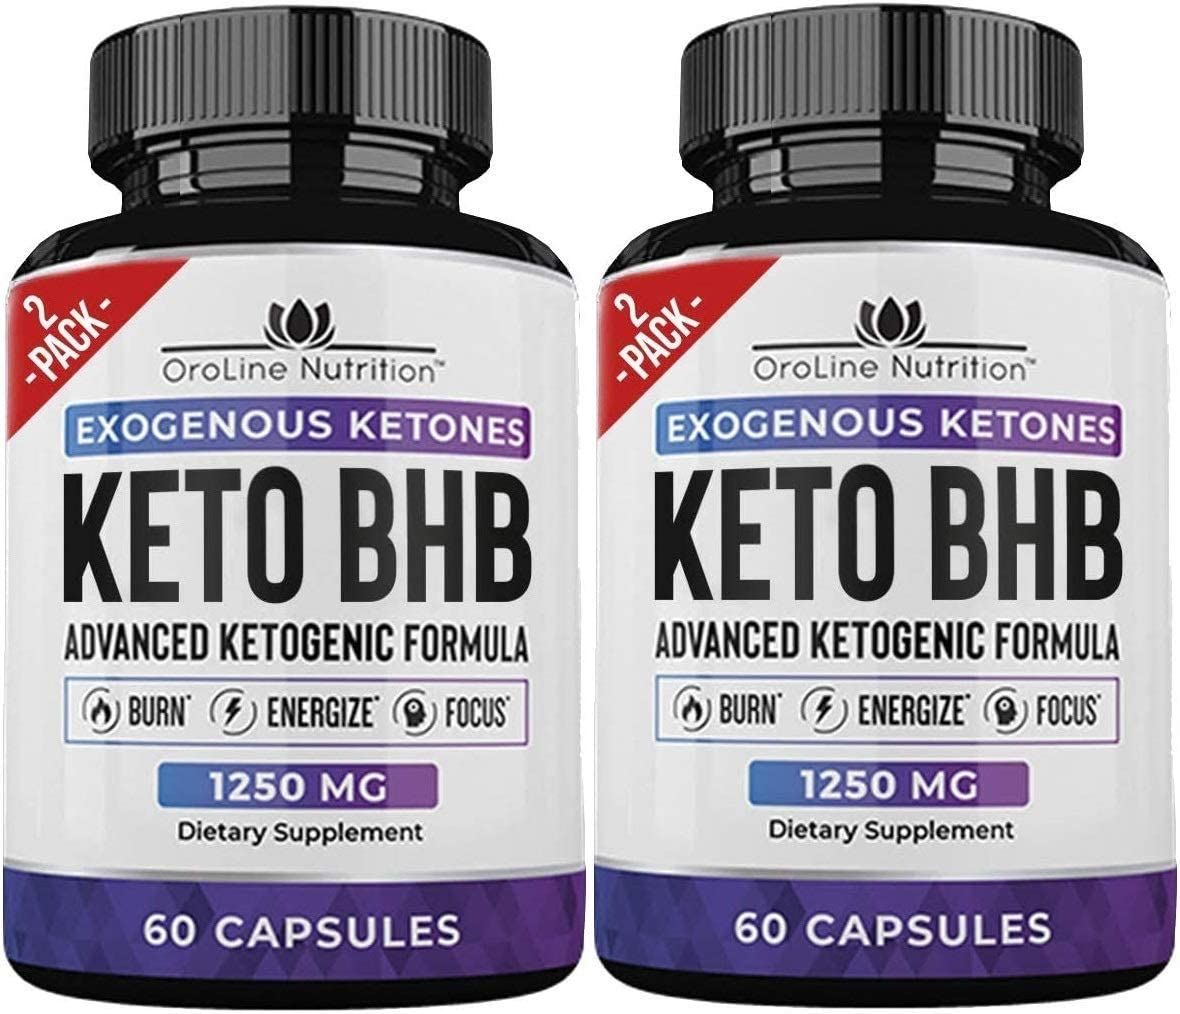 Keto Pills – 2 Pack 120 Capsules Advanced Keto Burn Diet Pills – Best Exogenous Ketones BHB Supplement Keto BHB Diet Pills for Women and Men – Max Strength Boost